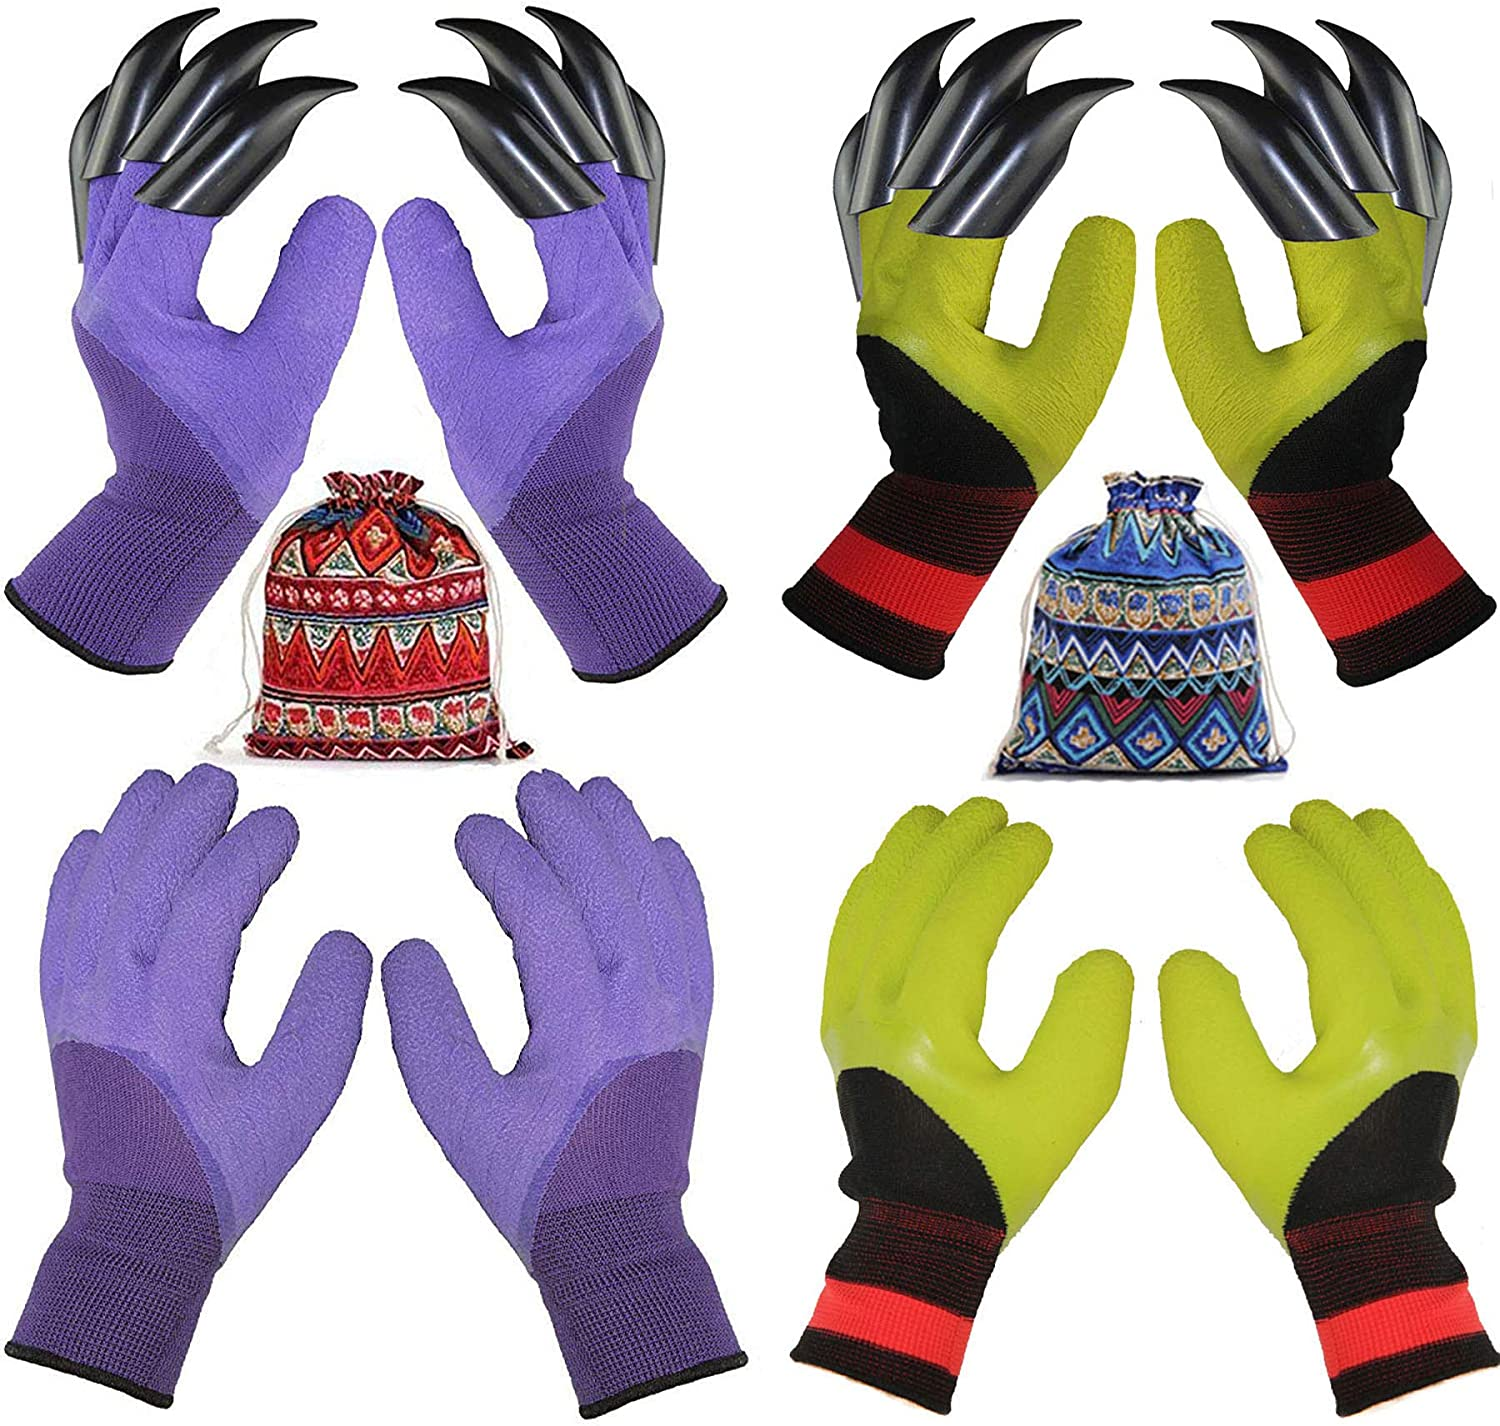 4 Pairs Garden Gloves With Gift Fingertips Claws Special sale item Dedication For Best